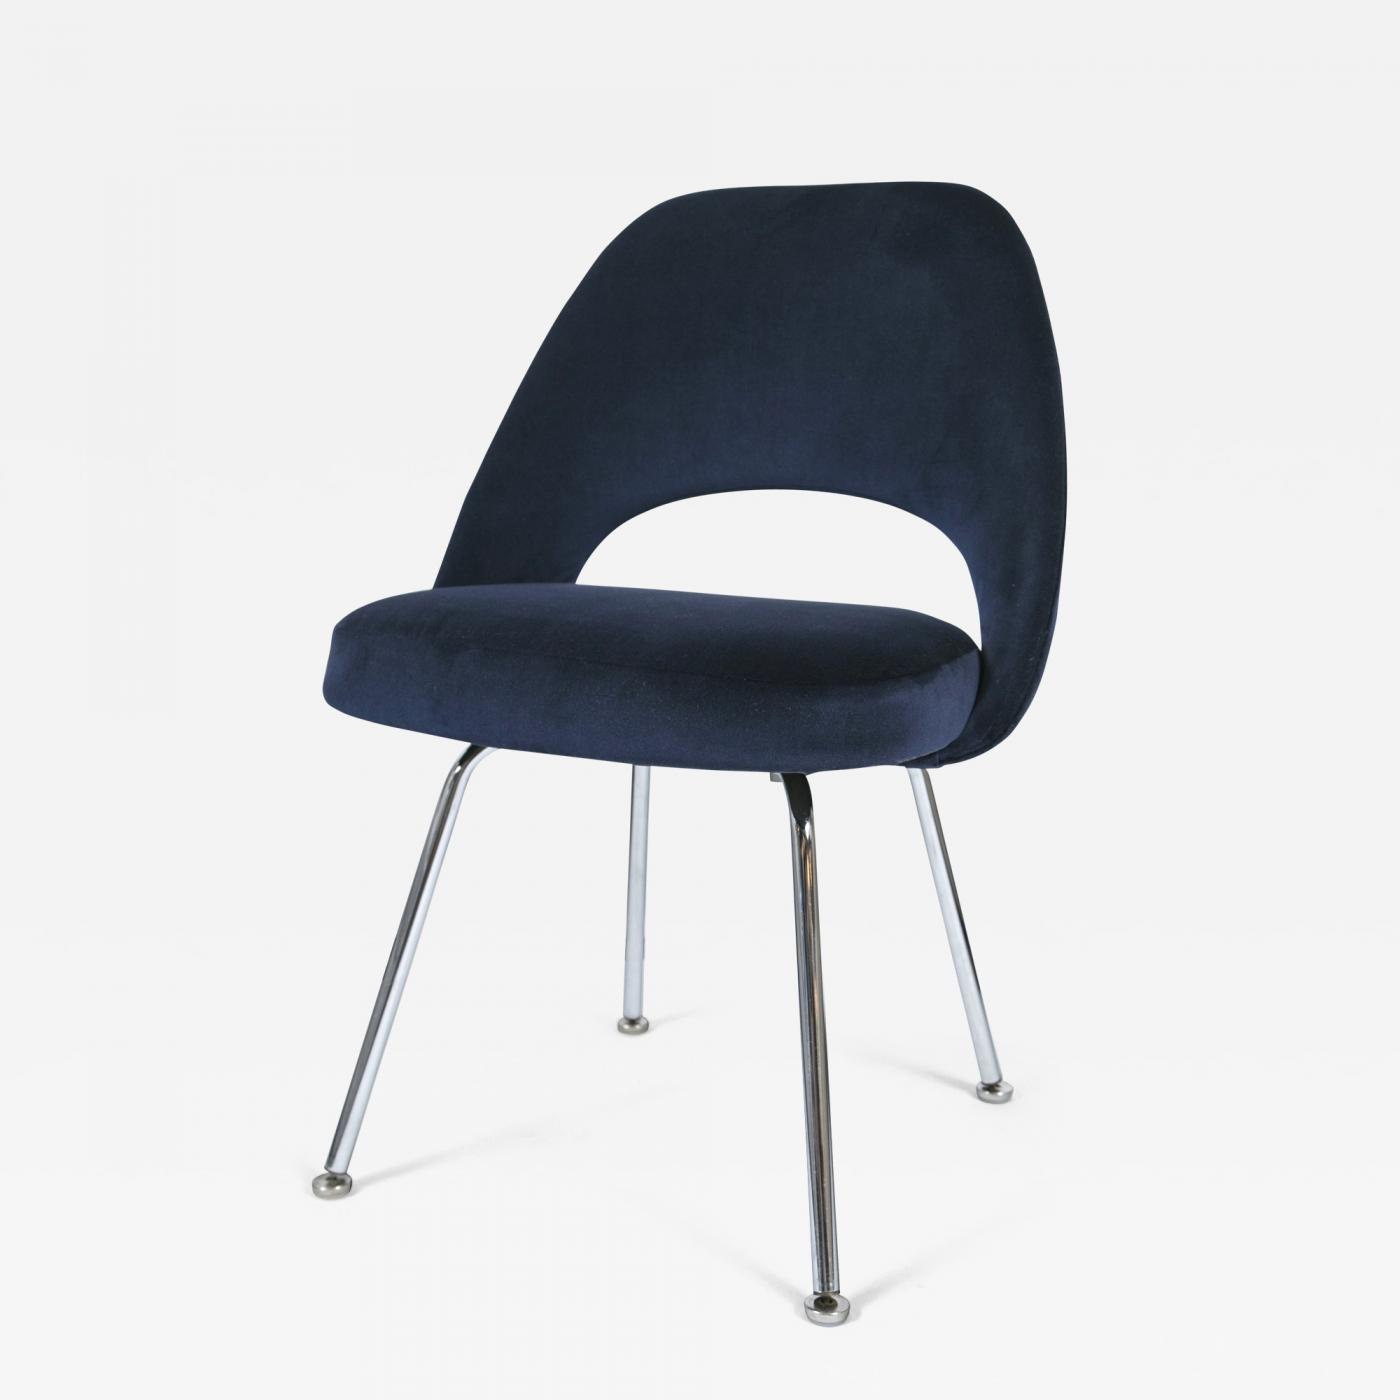 eero saarinen saarinen executive armless chair in navy